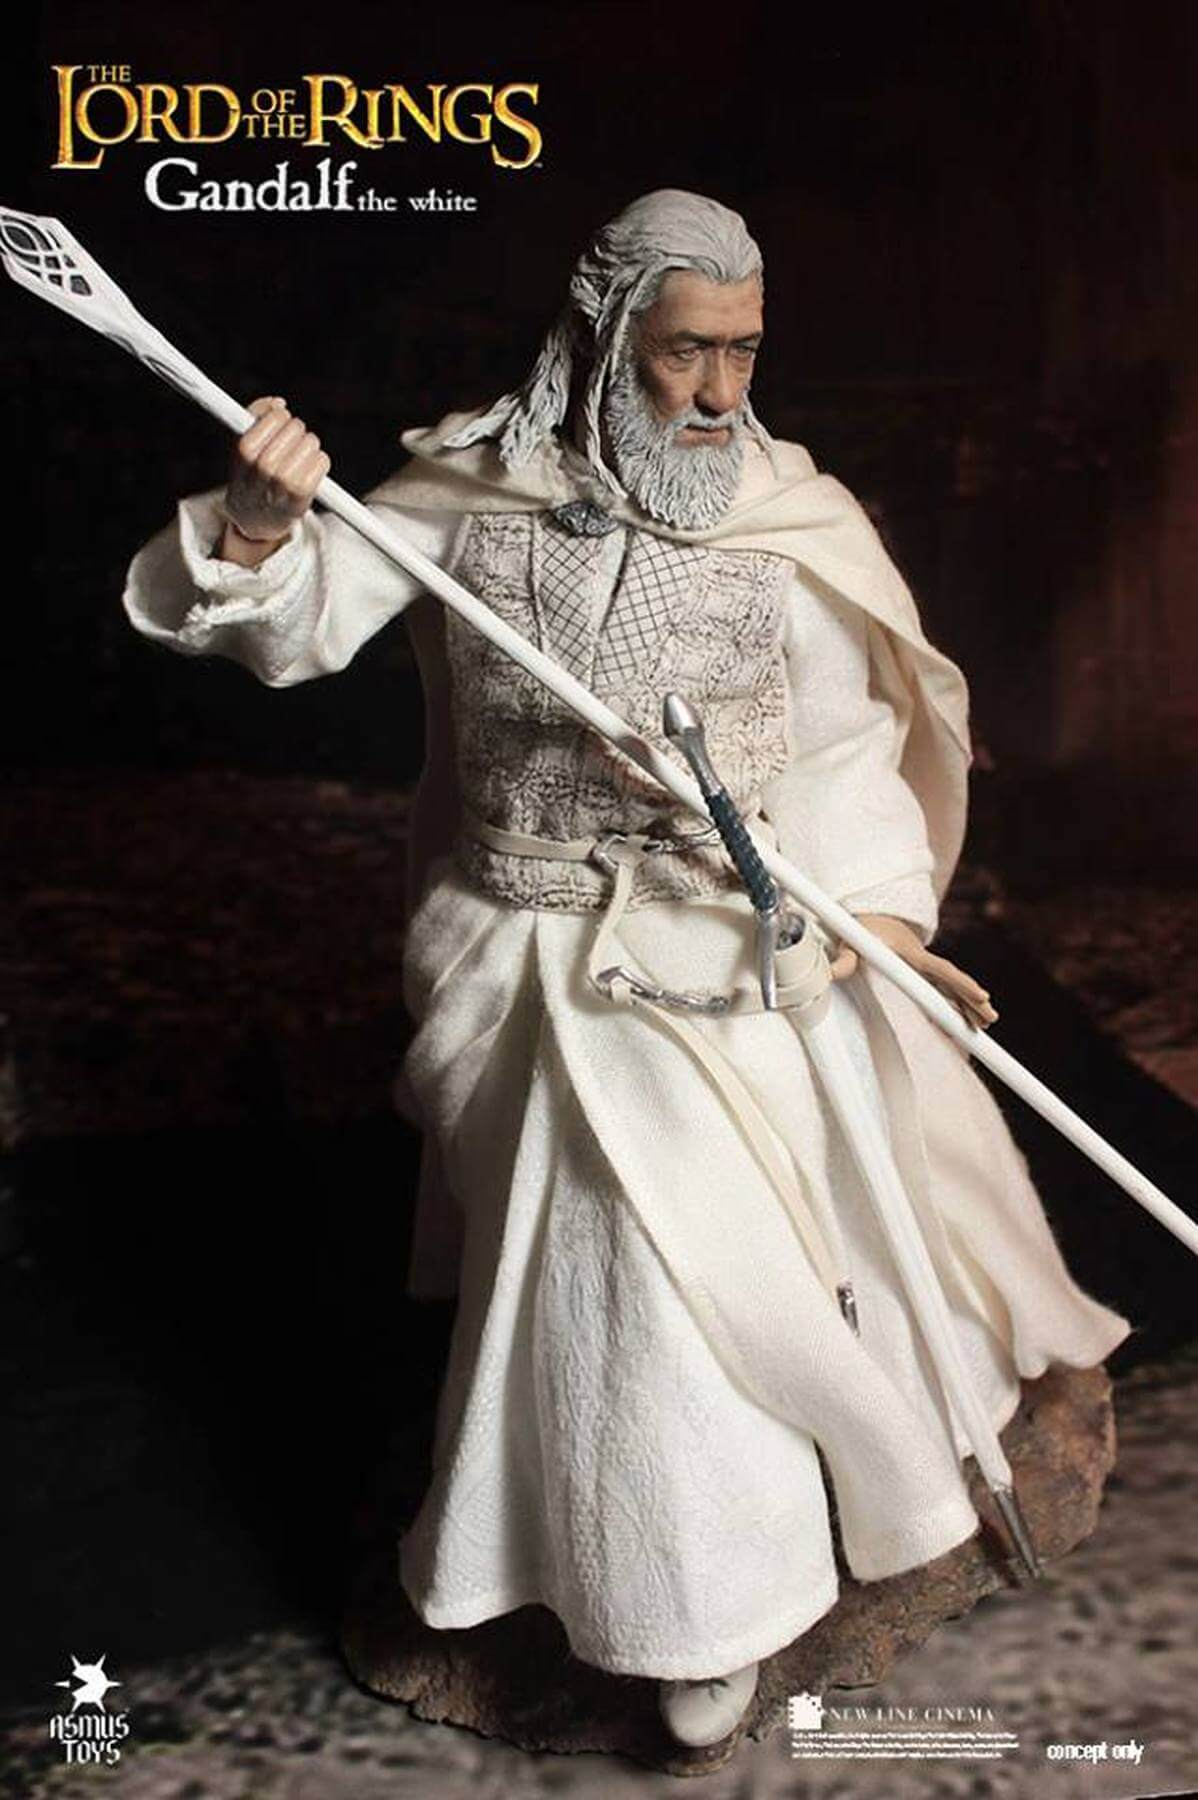 Asmus Toys The Lord of the Rings Gandalf the White 1/6 Scale Figure